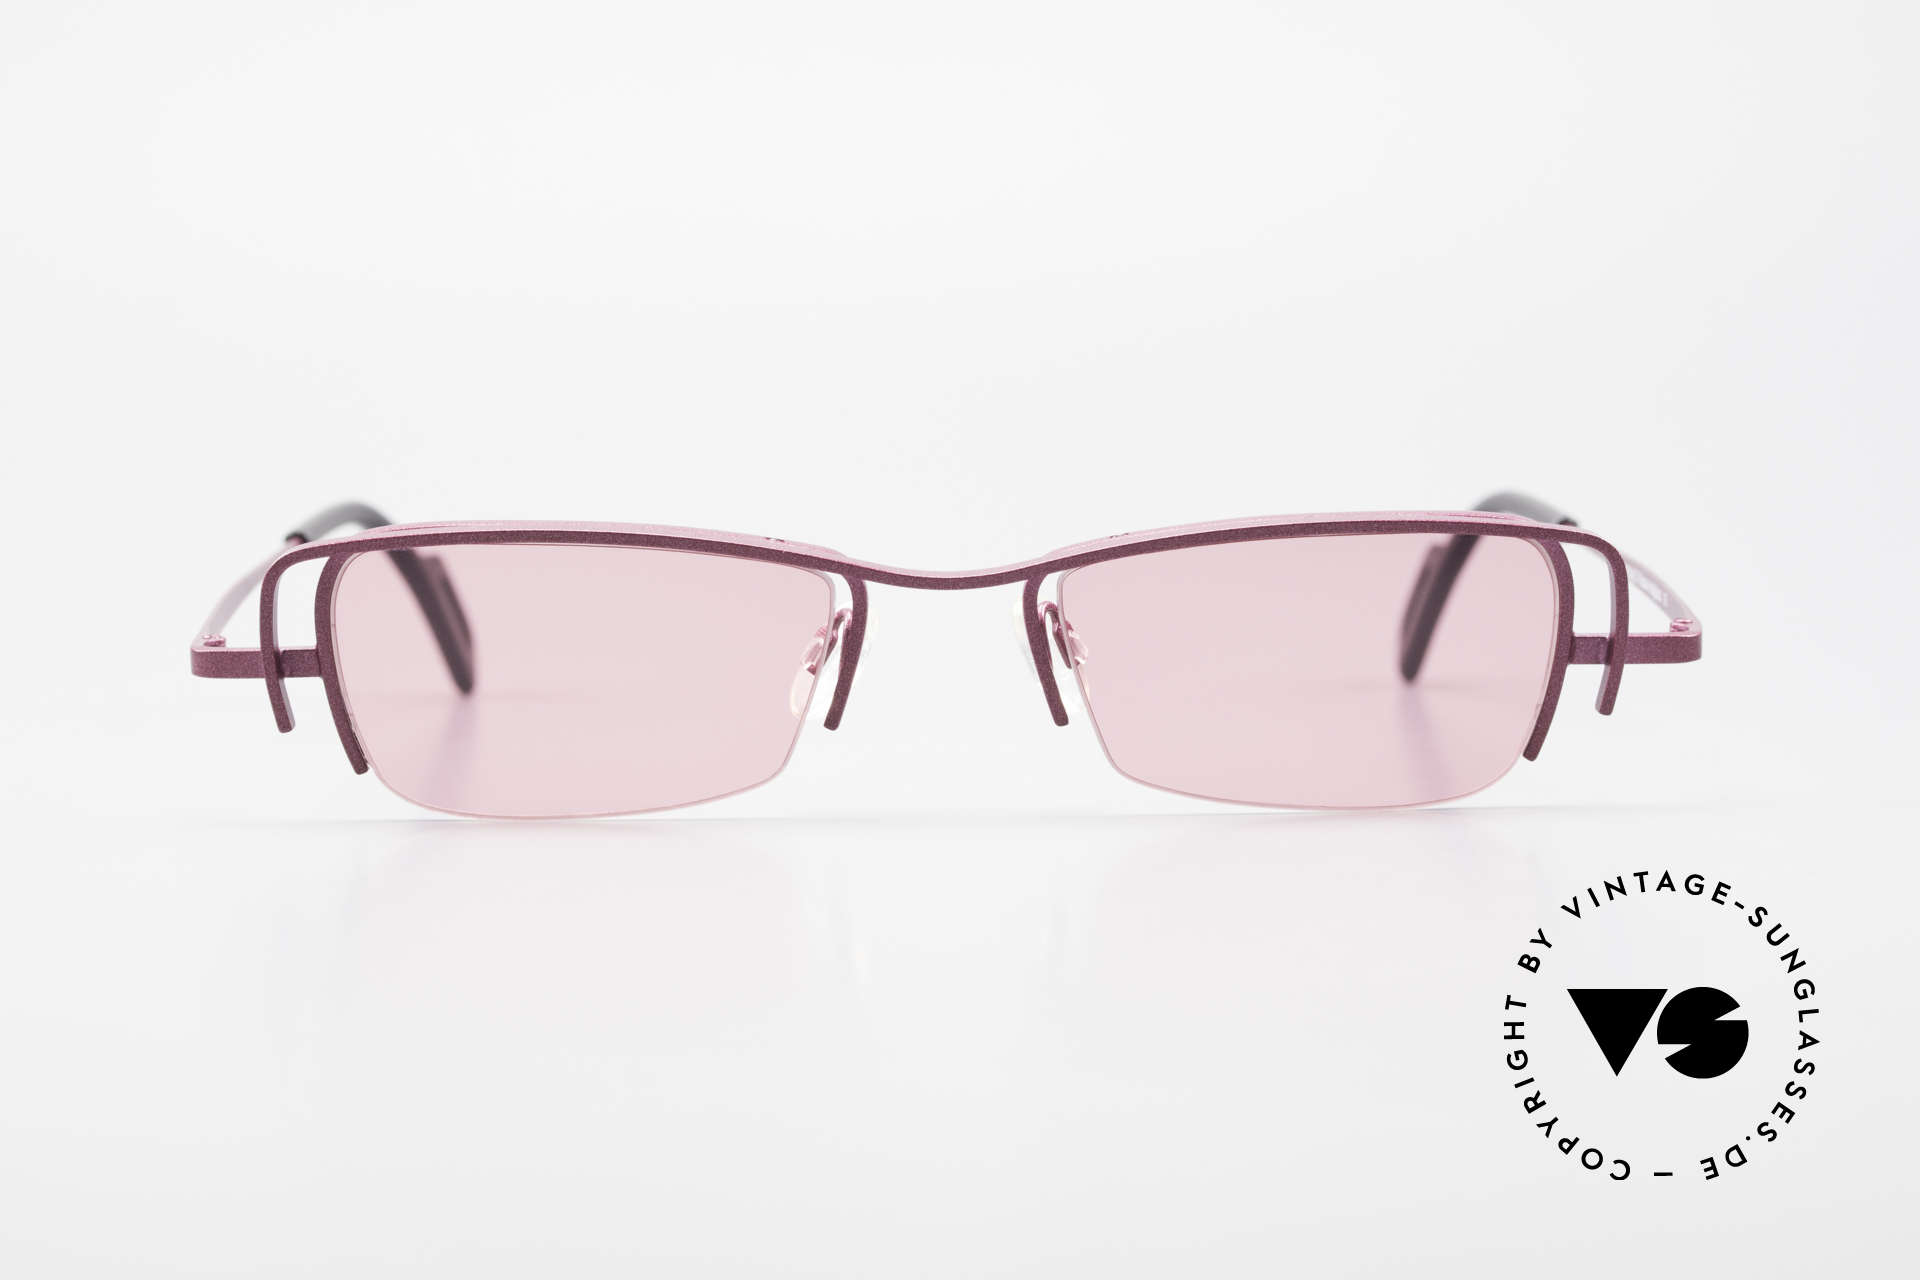 Theo Belgium Sping Square Ladies Designer Shades, founded in 1989 as 'opposite pole' to the 'mainstream', Made for Women